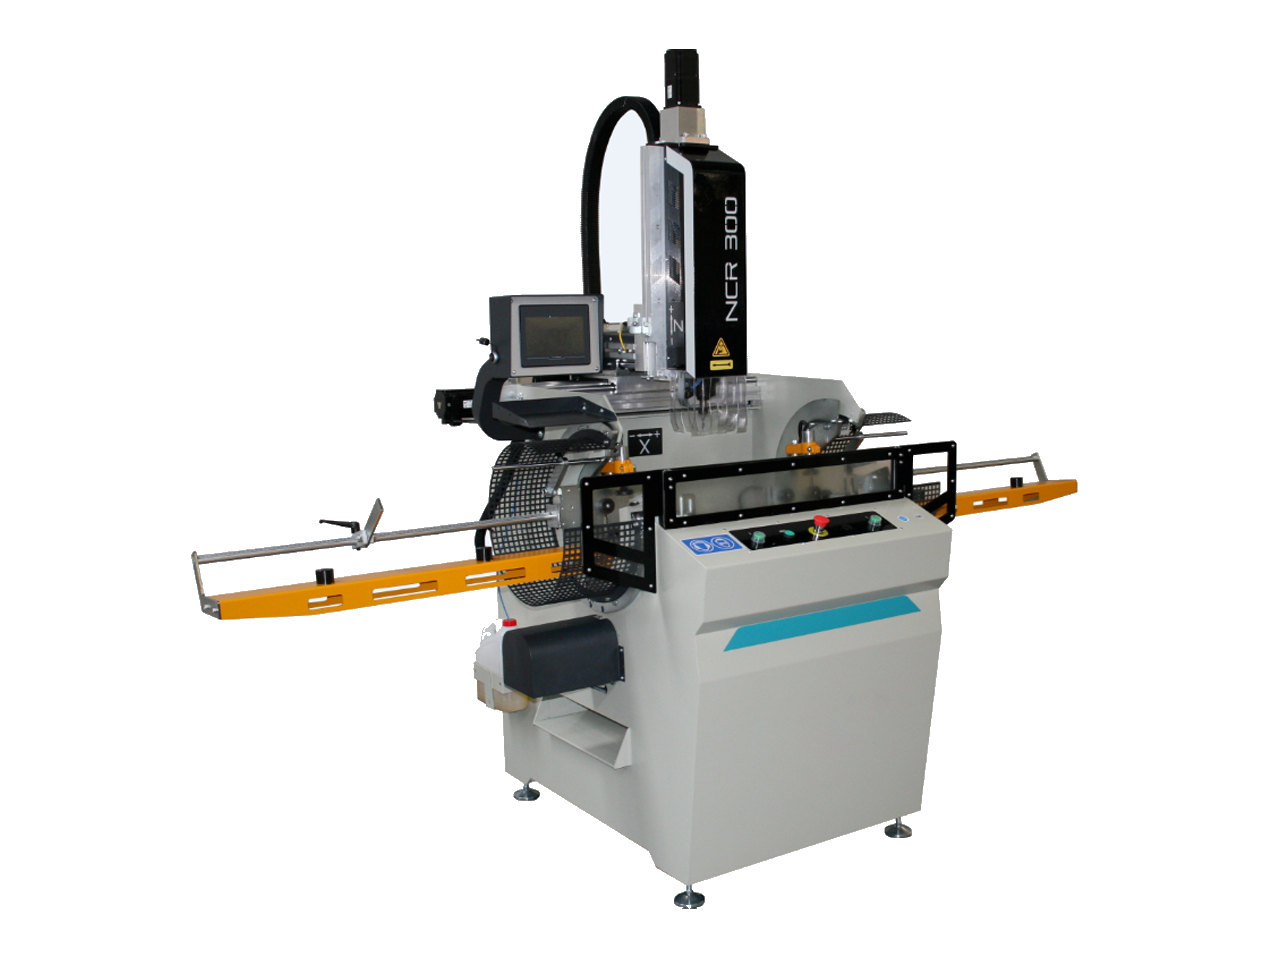 LIBRA-CNC 4 Axis CNC Copy Router